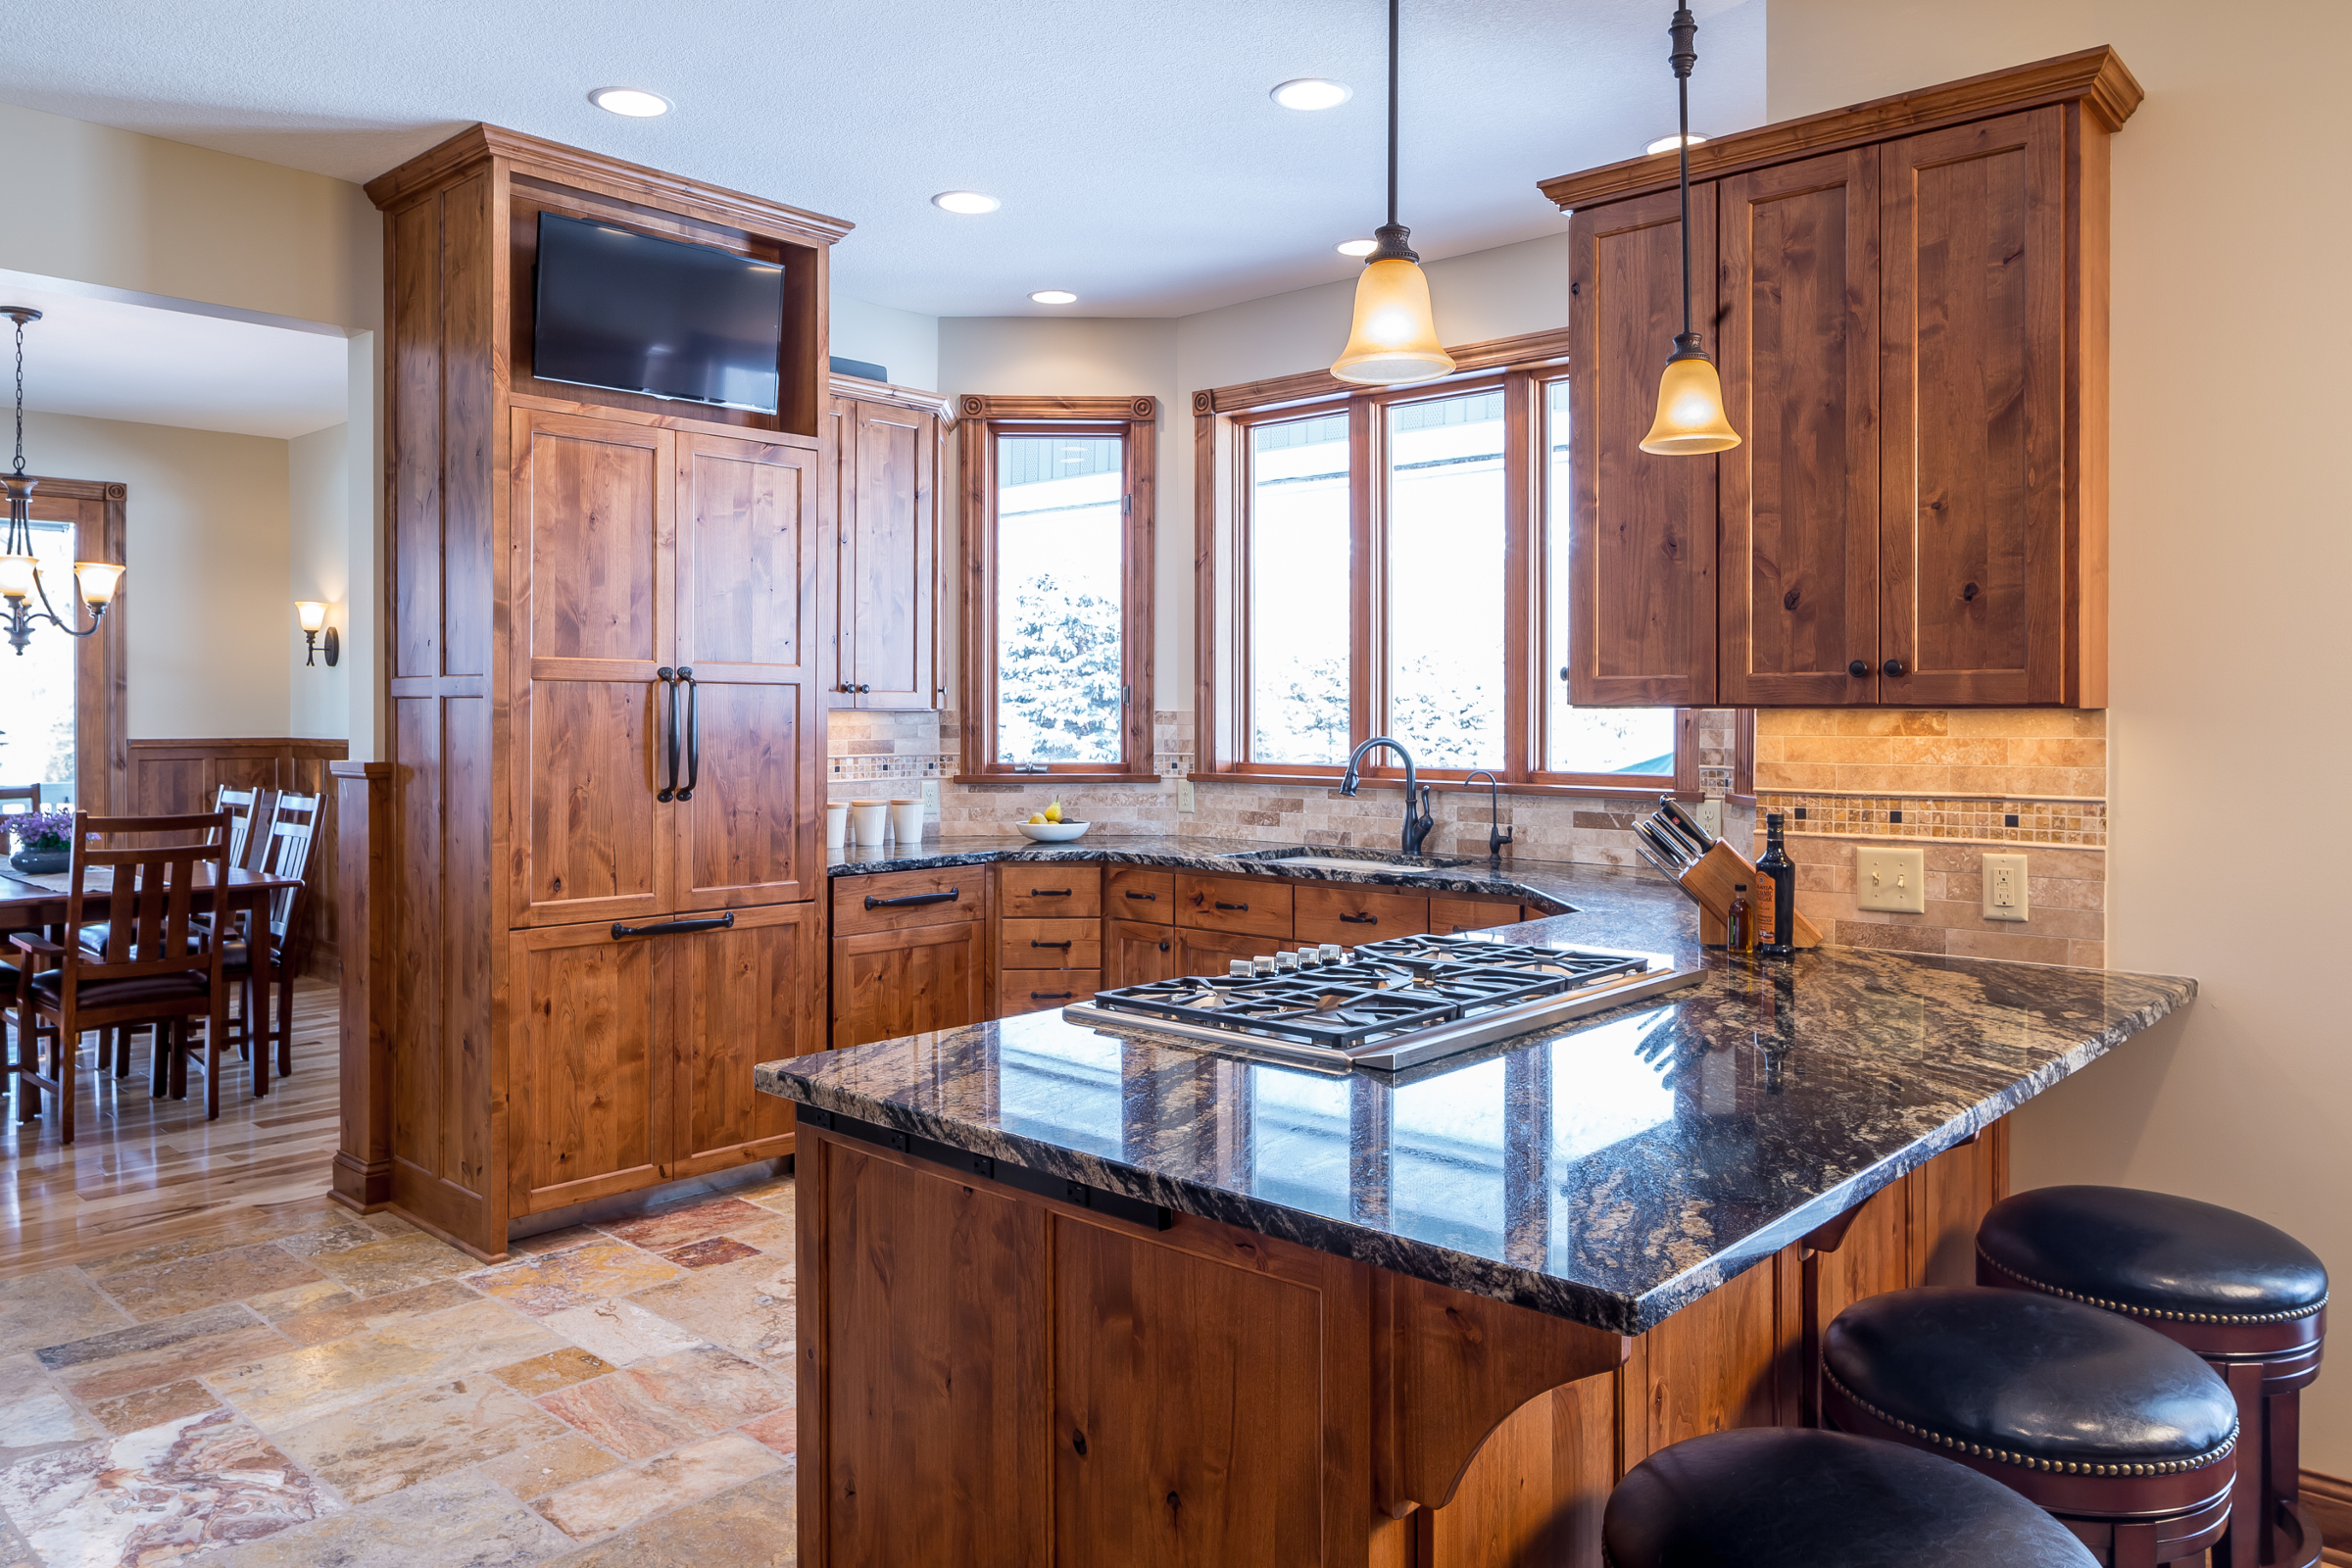 Kitchen Remodeling Contractors For The Minneapolis Area - Kitchen remodeling st paul mn